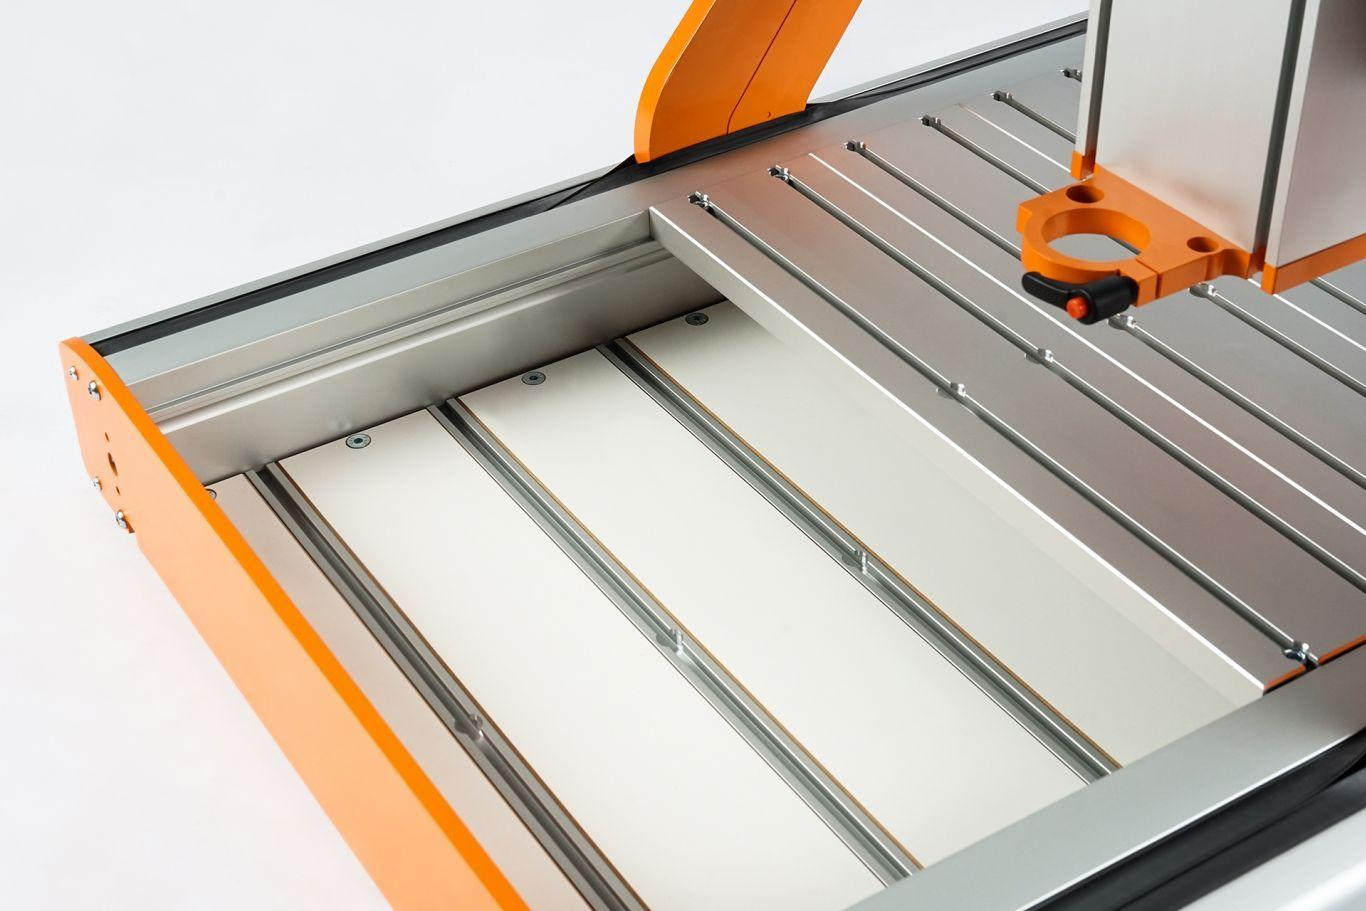 Stepcraft M-Series 1 StepCraft CNC Systems CNCshop.gr Stepcraft Greece